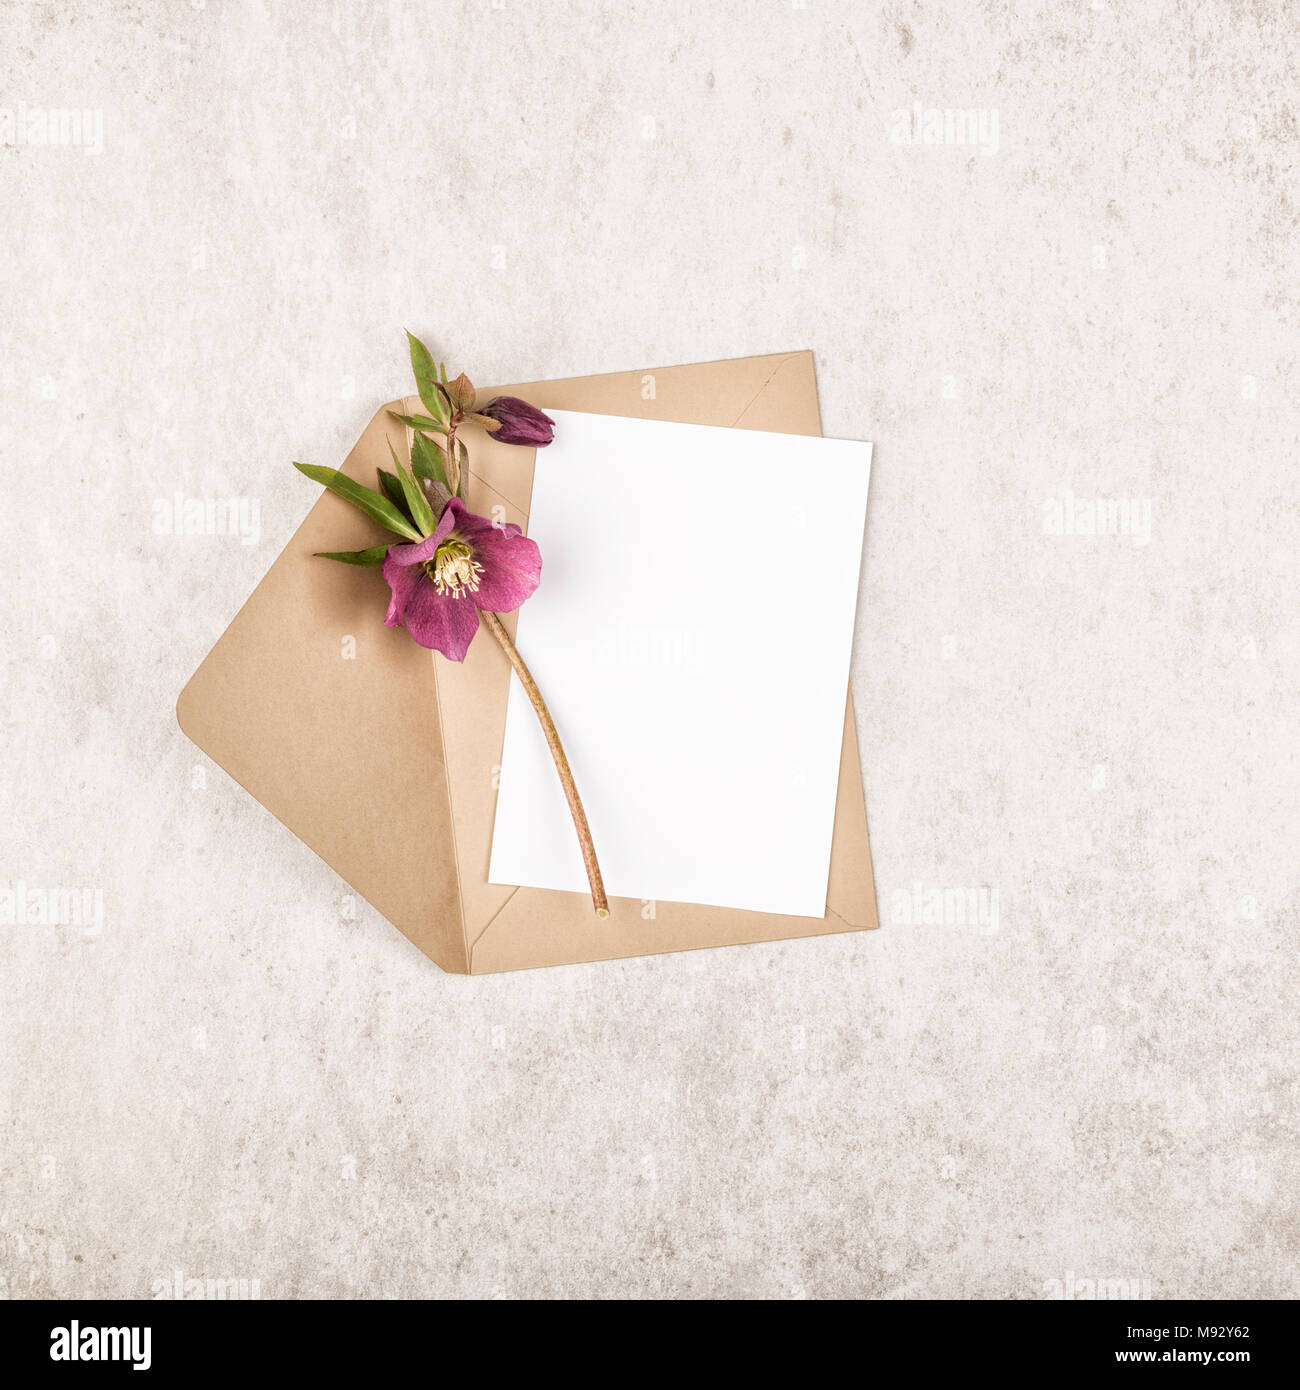 beige craft envelope with blank white note card and bouquet of